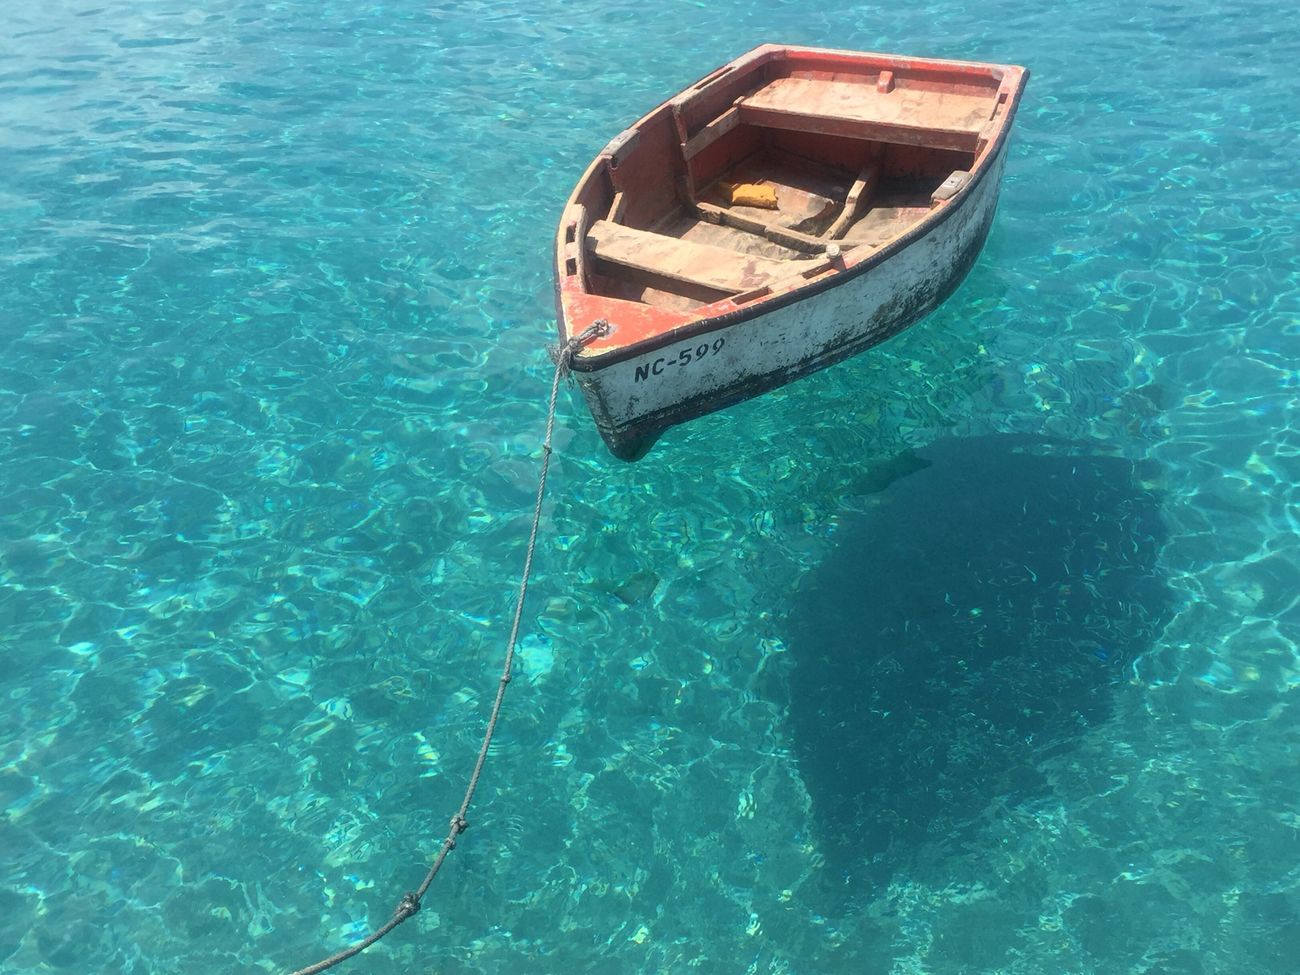 This Is It. Paradise Boat Carribean Ocean Clear Water Blue Playa Grandi Curacao The Purist (no Edit, No Filter) IPhoneography